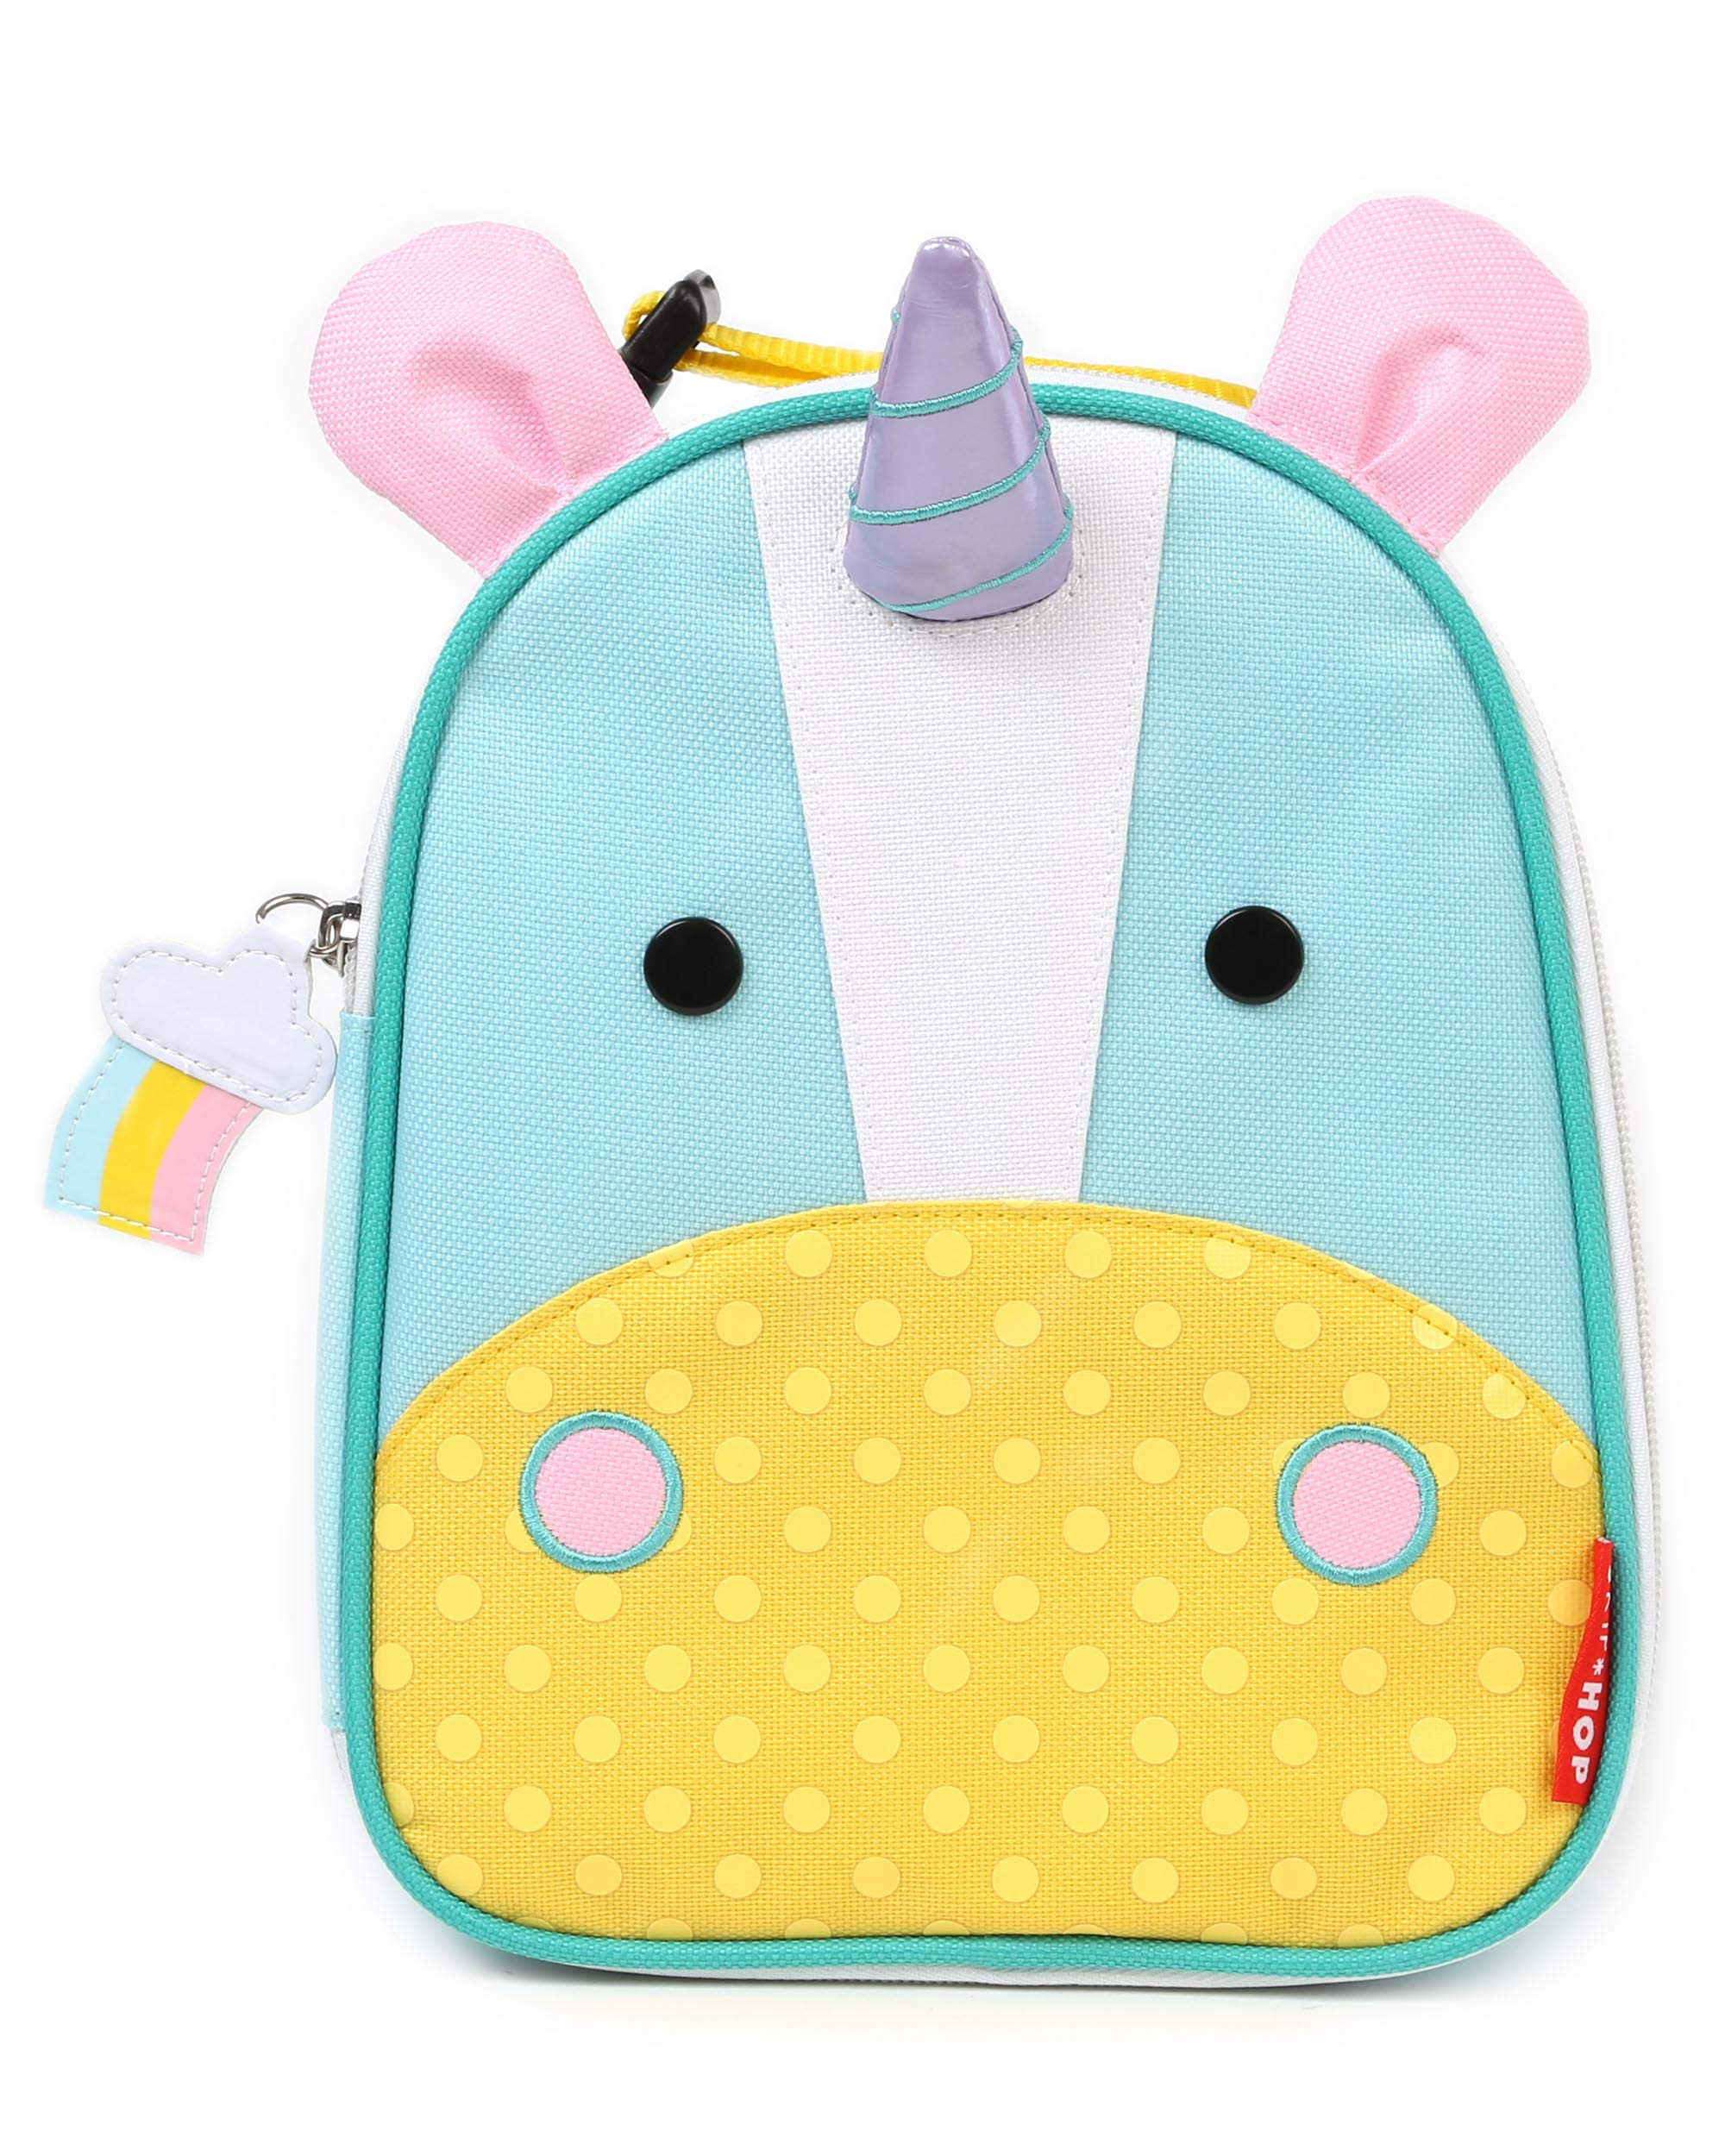 Skip Hop Zoo Kids Insulated Lunch Box, Eureka Unicorn, Multi by Skip Hop